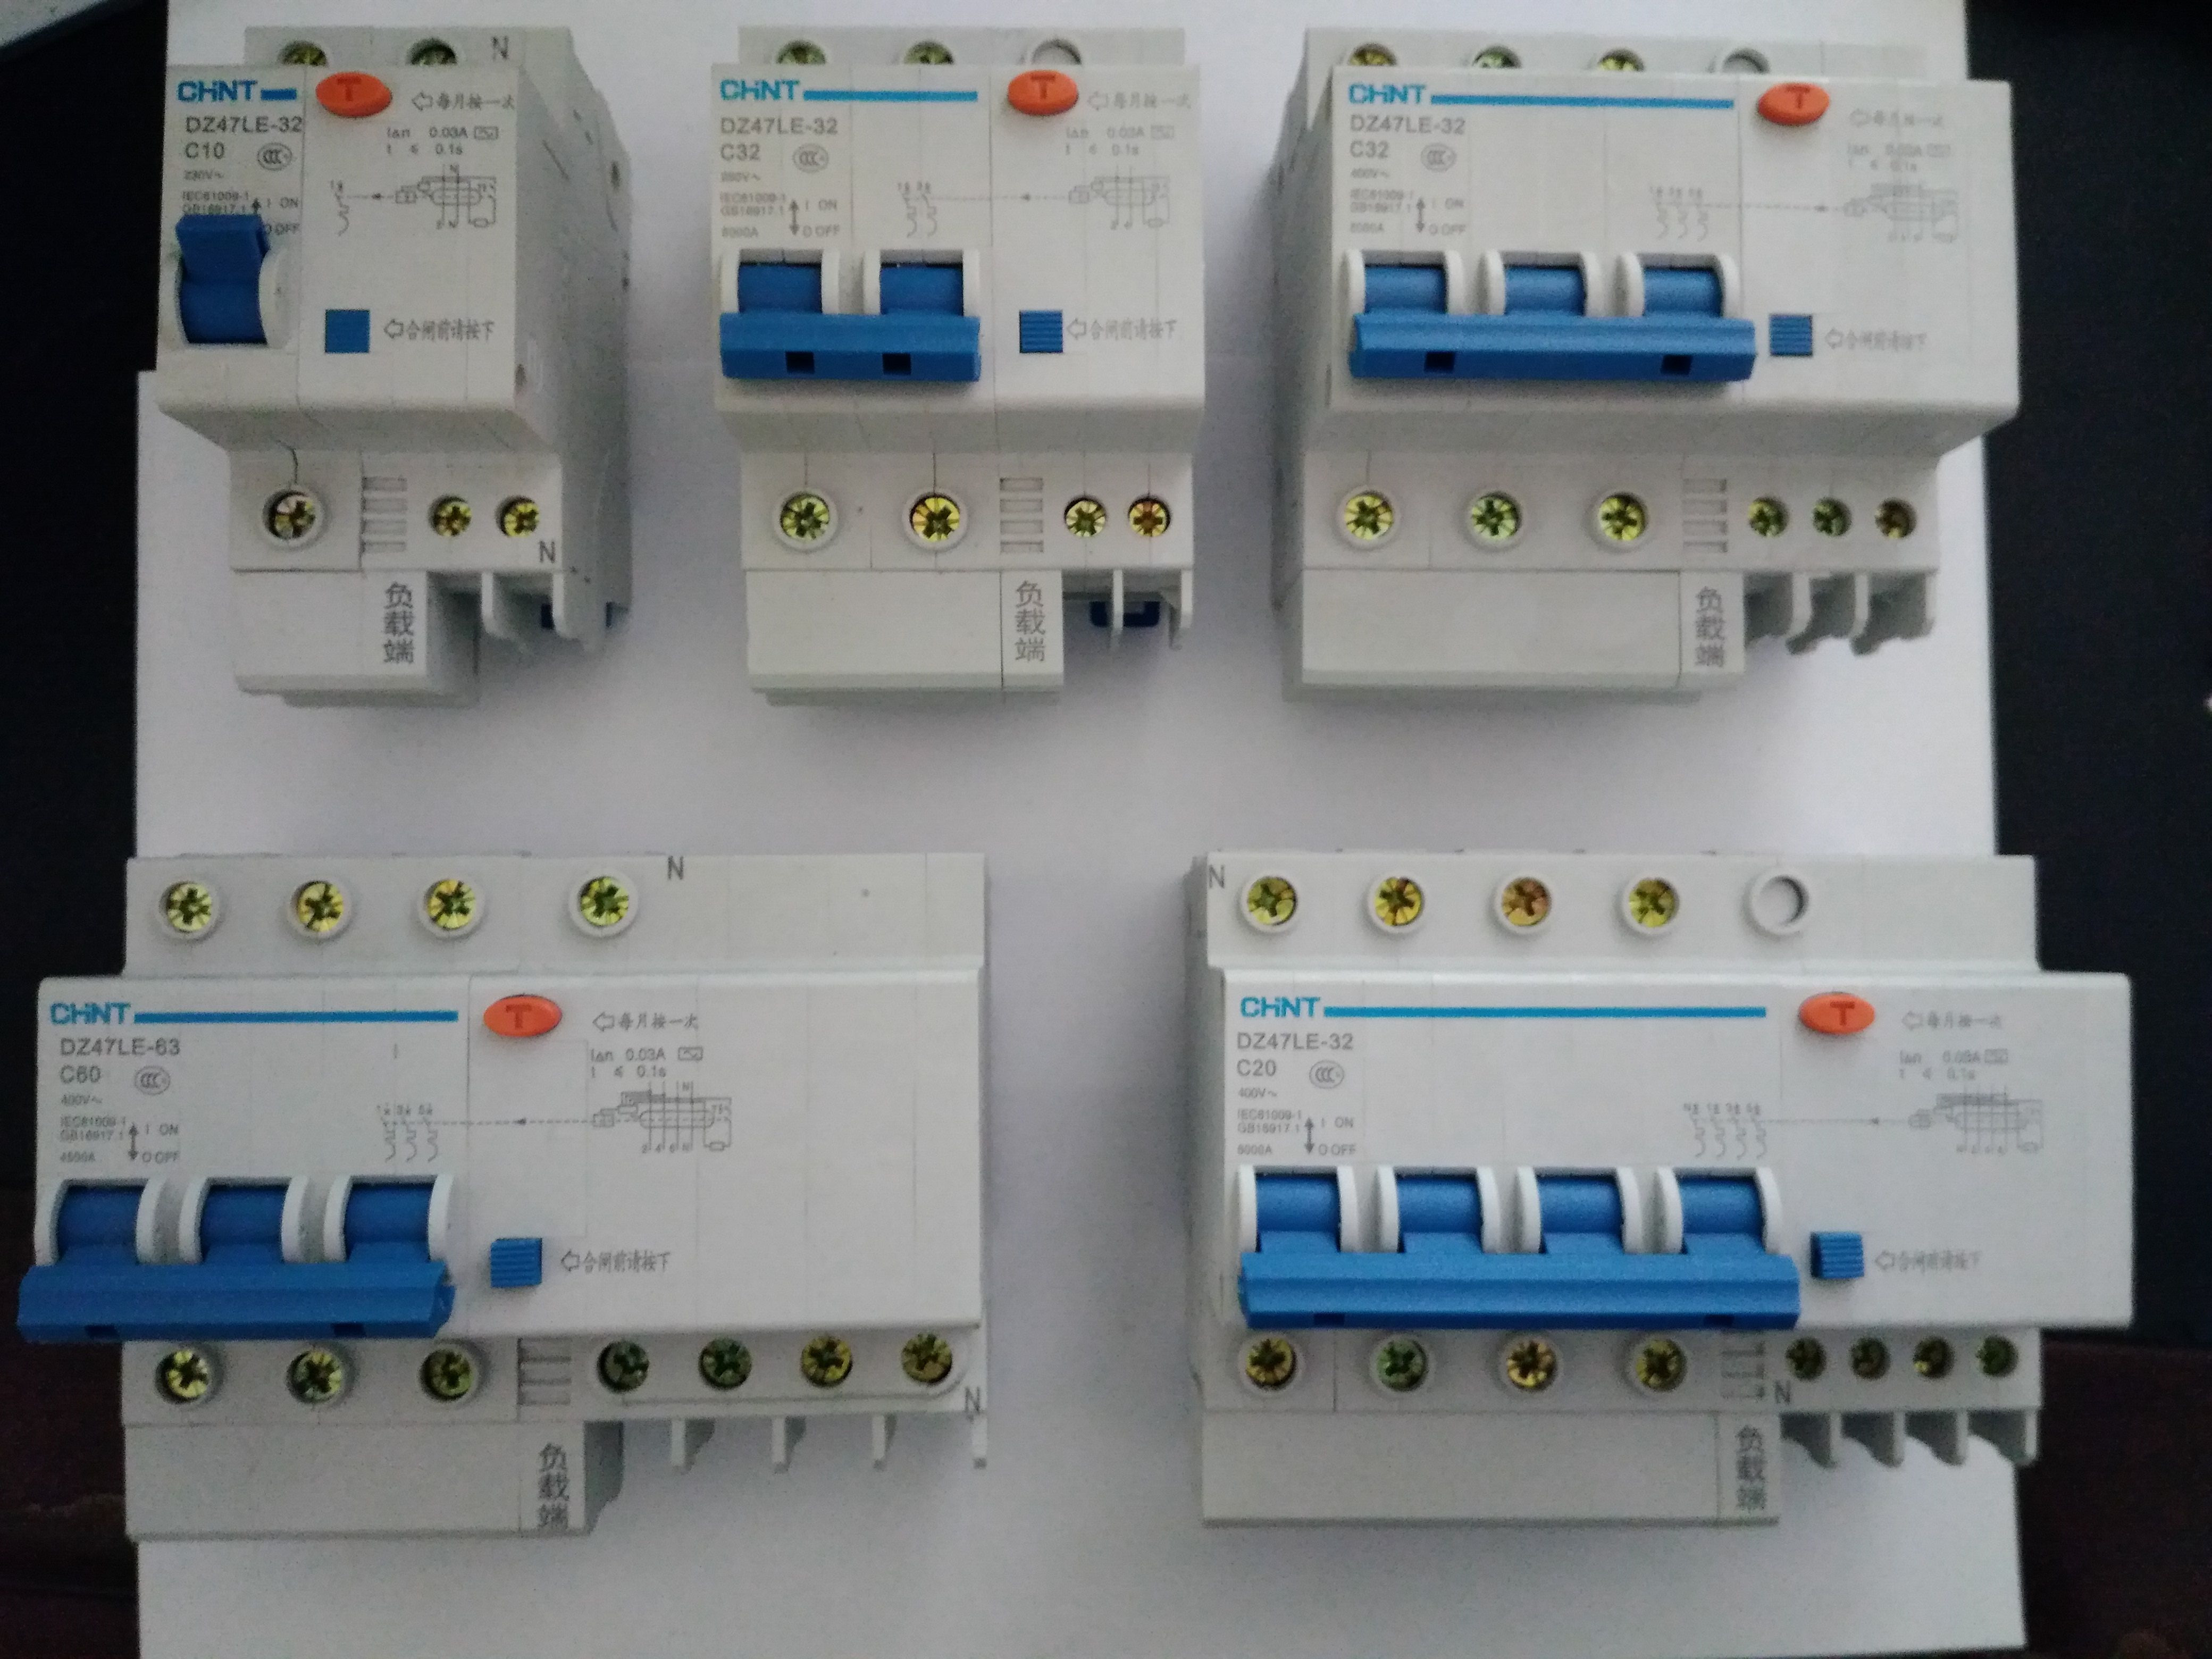 Usd 841 Zhengtai Circuit Breaker Leakage Protector From Integrated Chinese Wholesalers Manufacturers Protection Dz47le 1p 2p 3p 4p 6a 10a 20a 60a